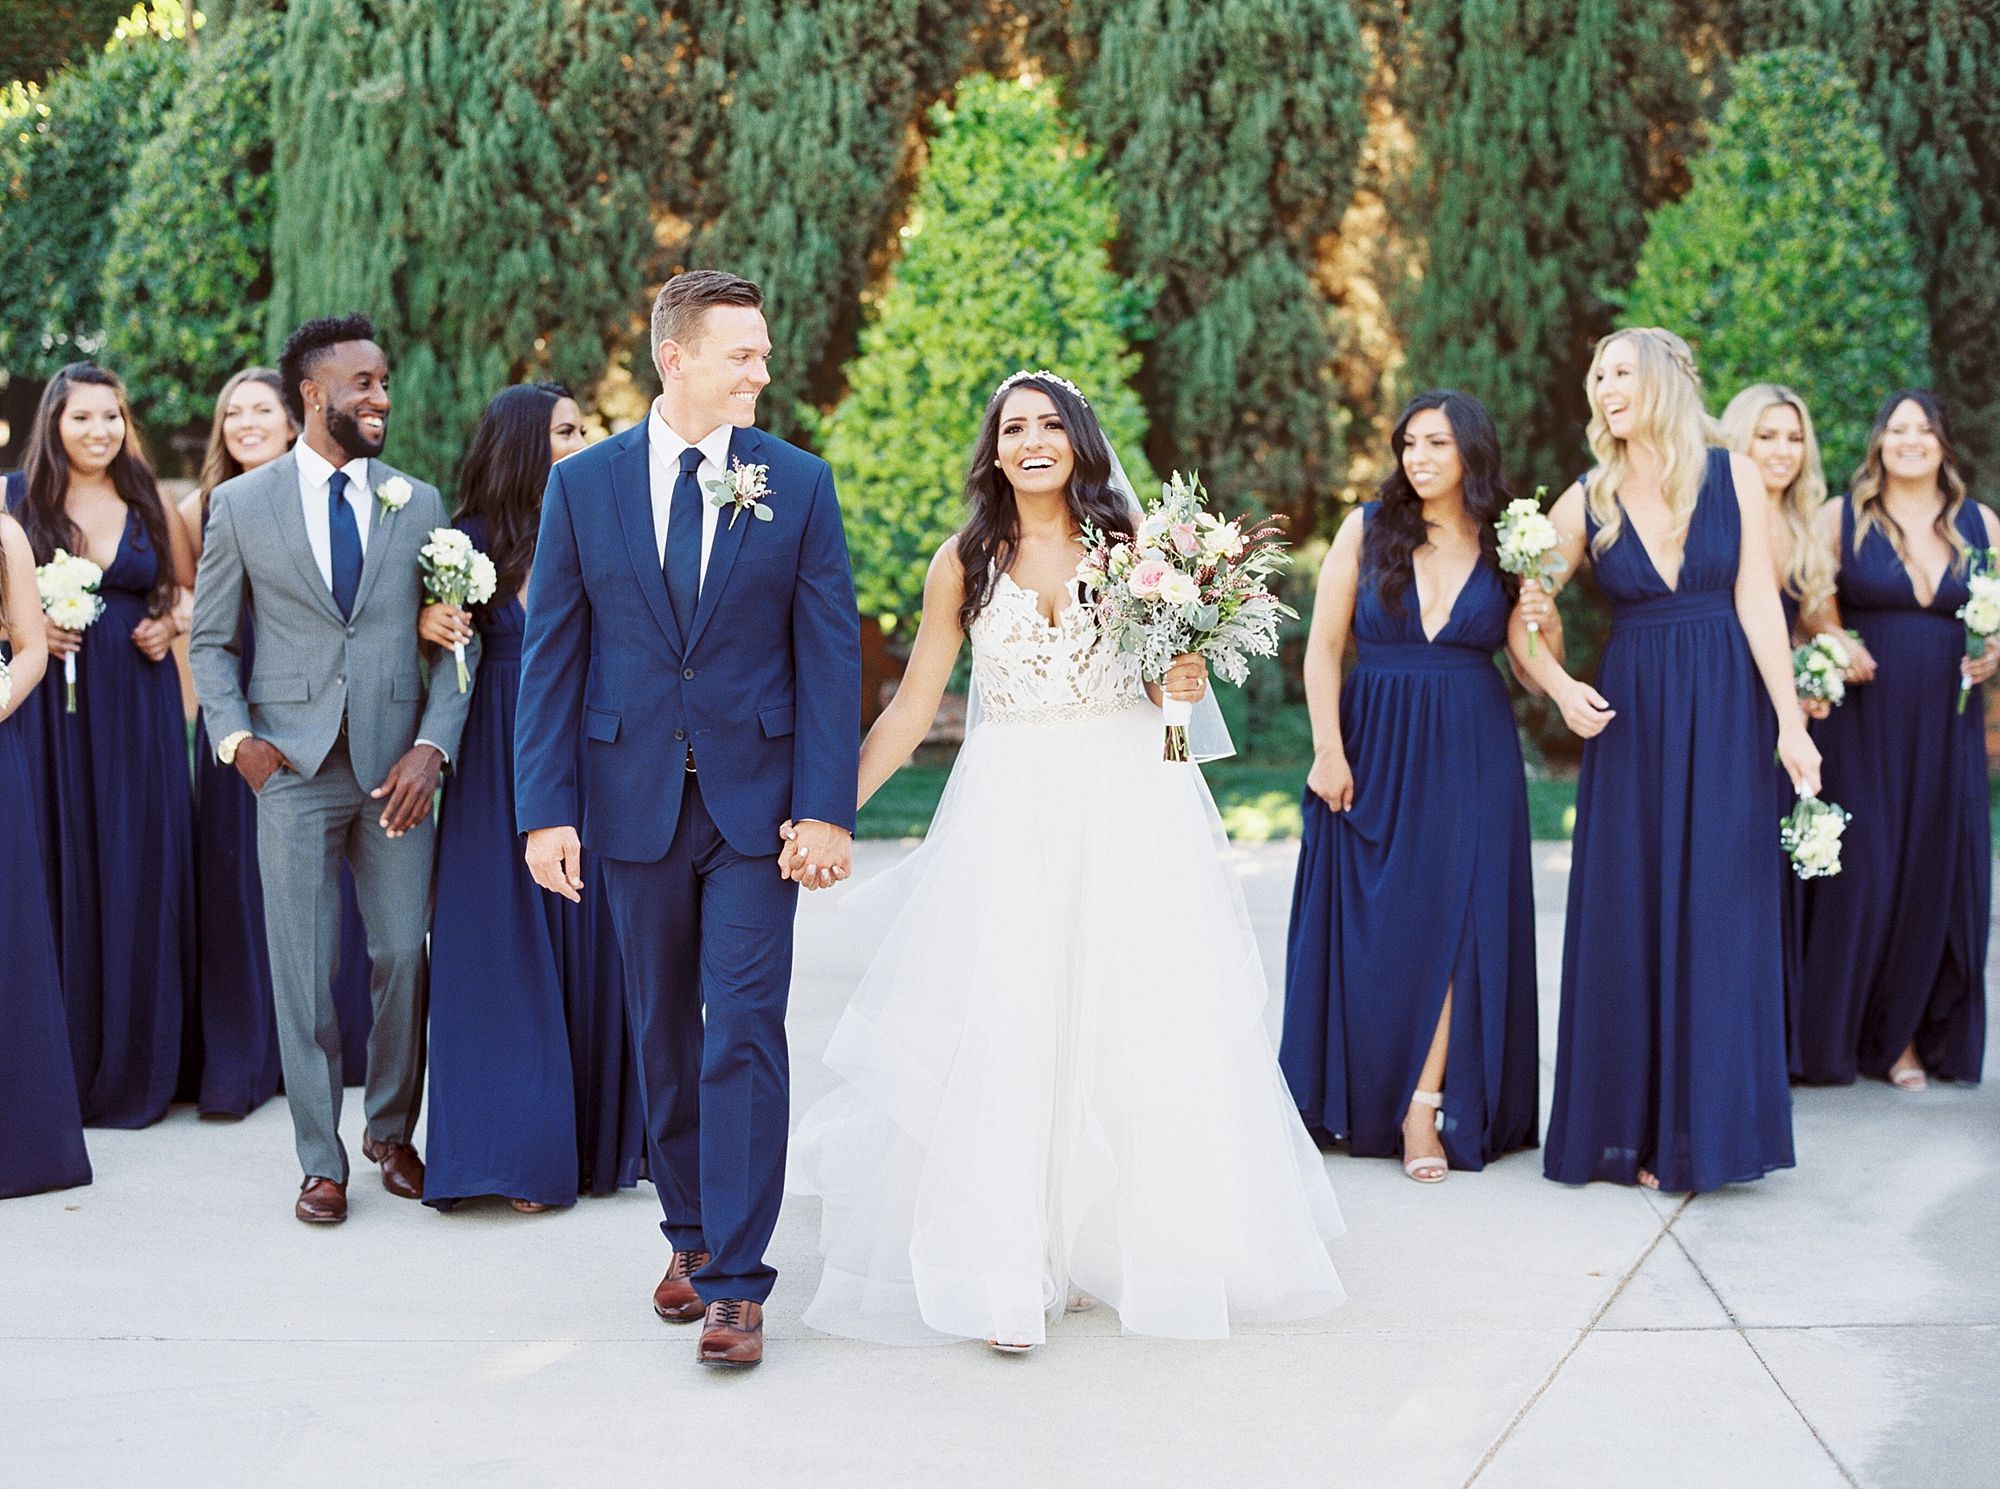 The River Mill Wedding Stockton - Ashley Baumgartner - Stockton Wedding Photographer - Sacramento Wedding Photography - Hybrid and Film Photographer - Sacramento Film Photographer_0027.jpg